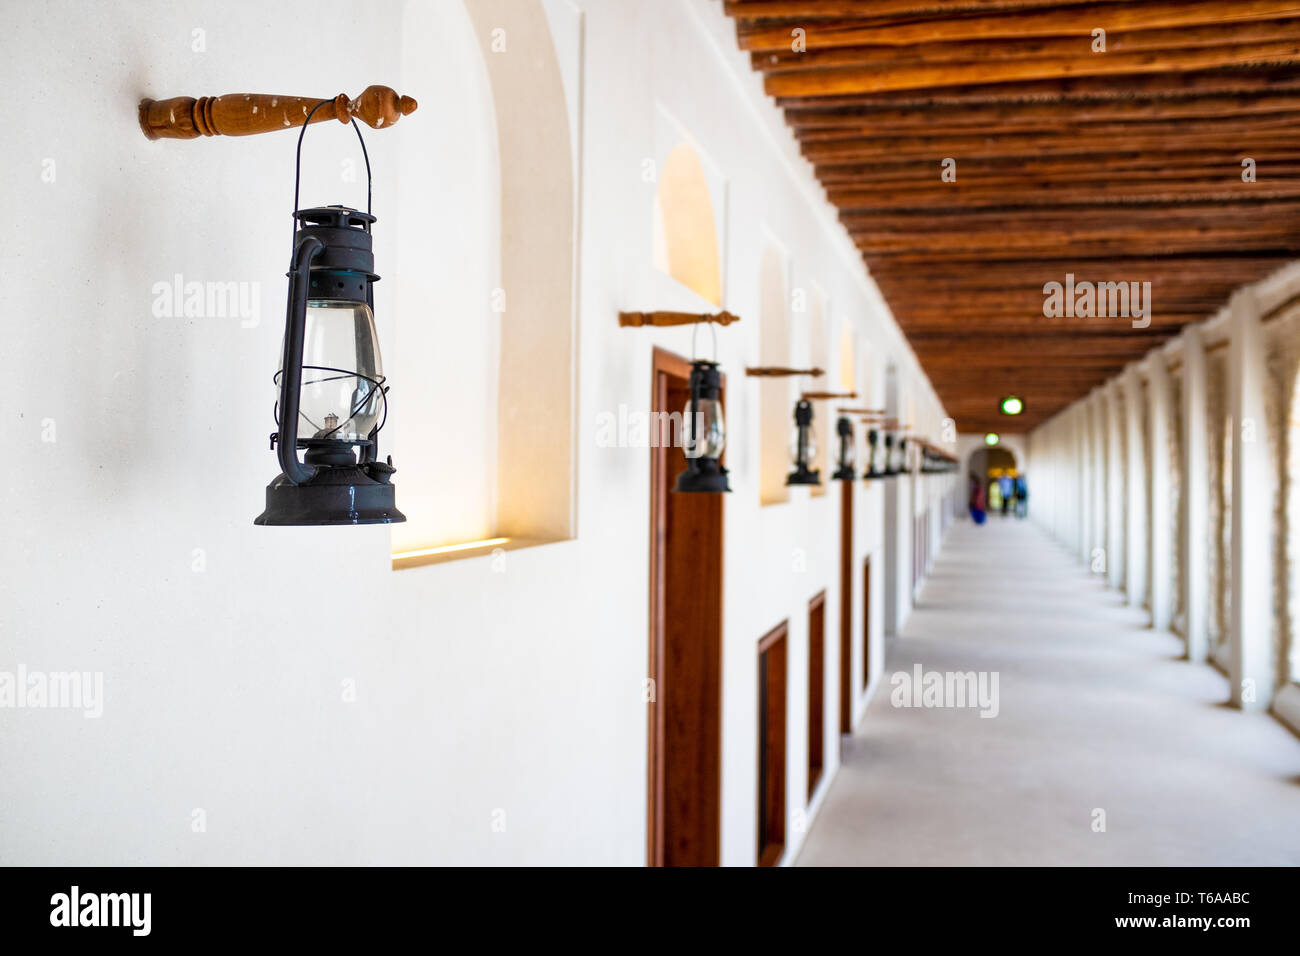 Landscape photo of a series of kerosene lamp in one of the open-air corridor forming a one point perspective in the Qasr Al-Hosn Fort in Abu Dhabi, Un Stock Photo